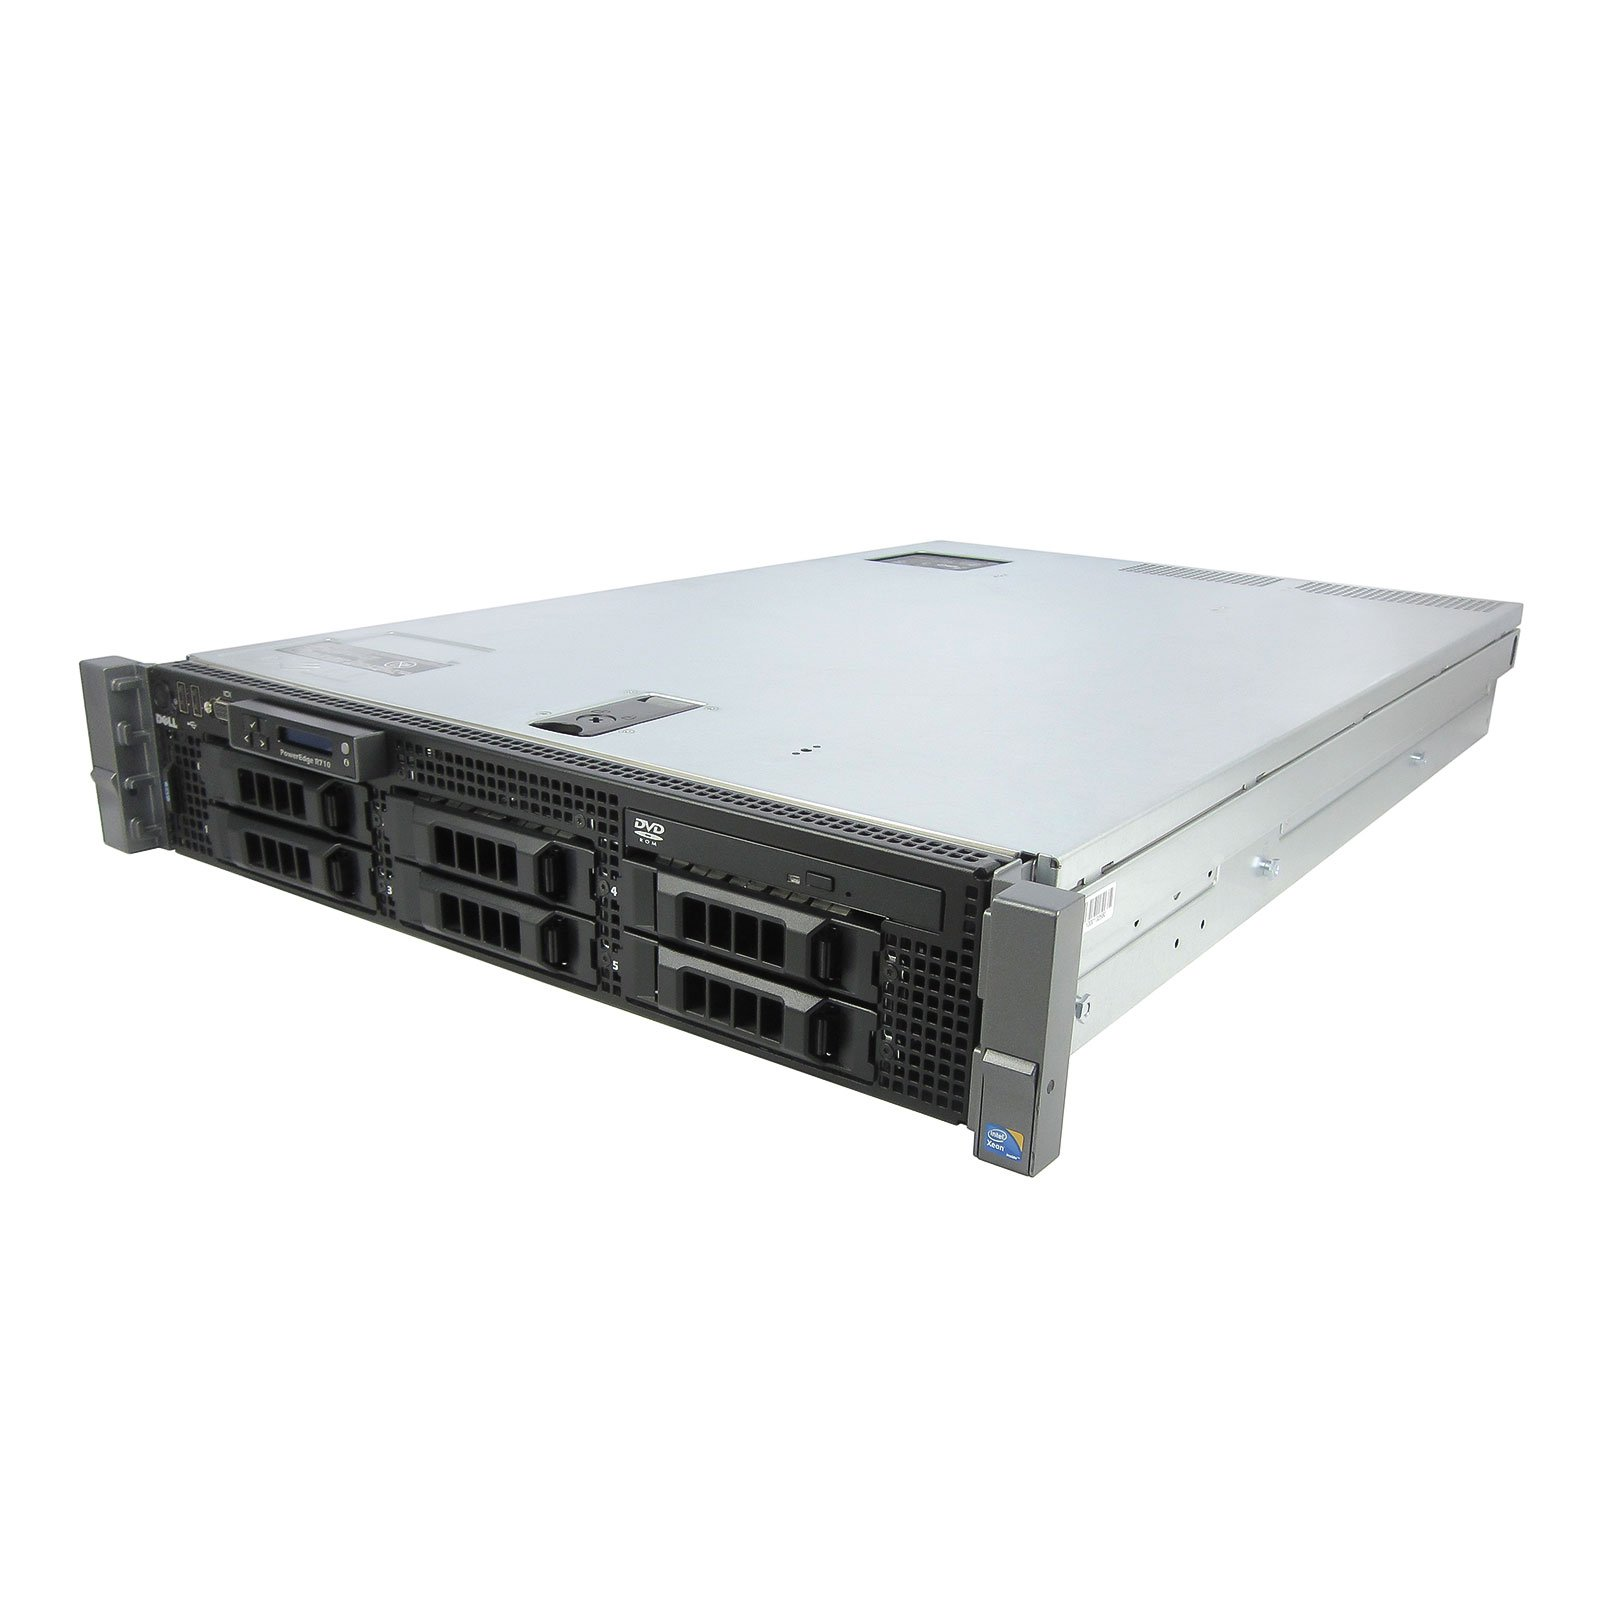 DELL PowerEdge R710 Server 2x 2.80Ghz X5660 Six Core 288GB 6x 2TB (Certified Refurbished)